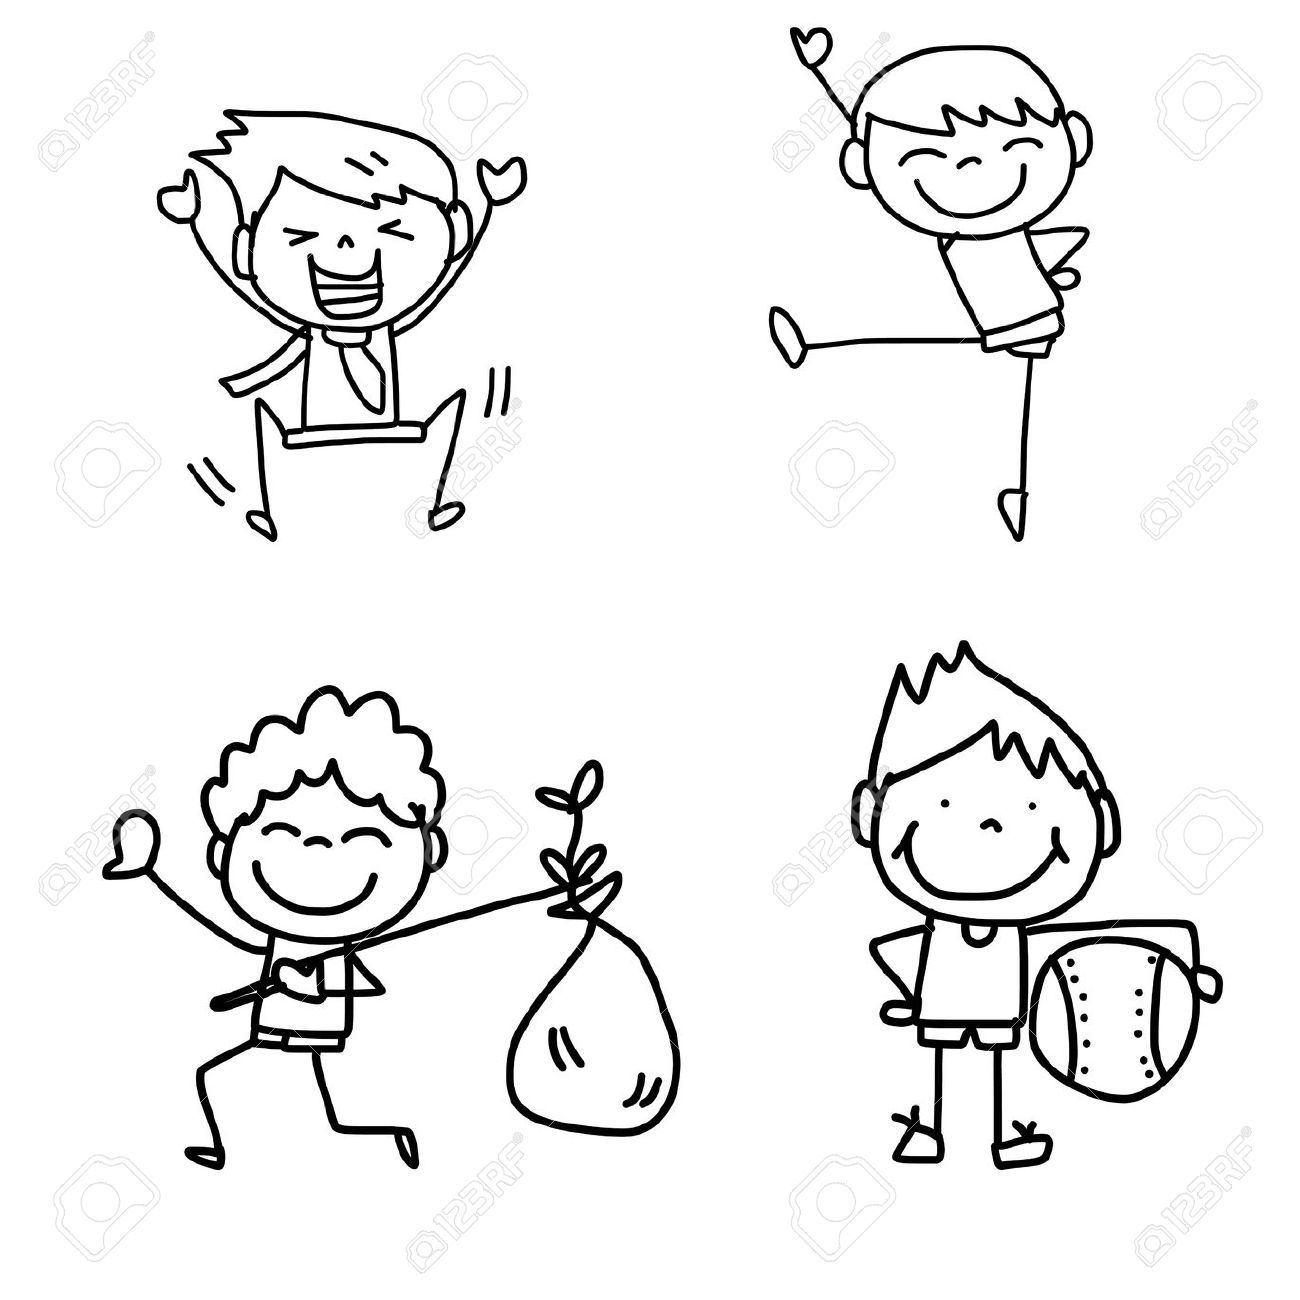 hand drawing cartoon happy kids playing royalty free cliparts vectors and stock illustration